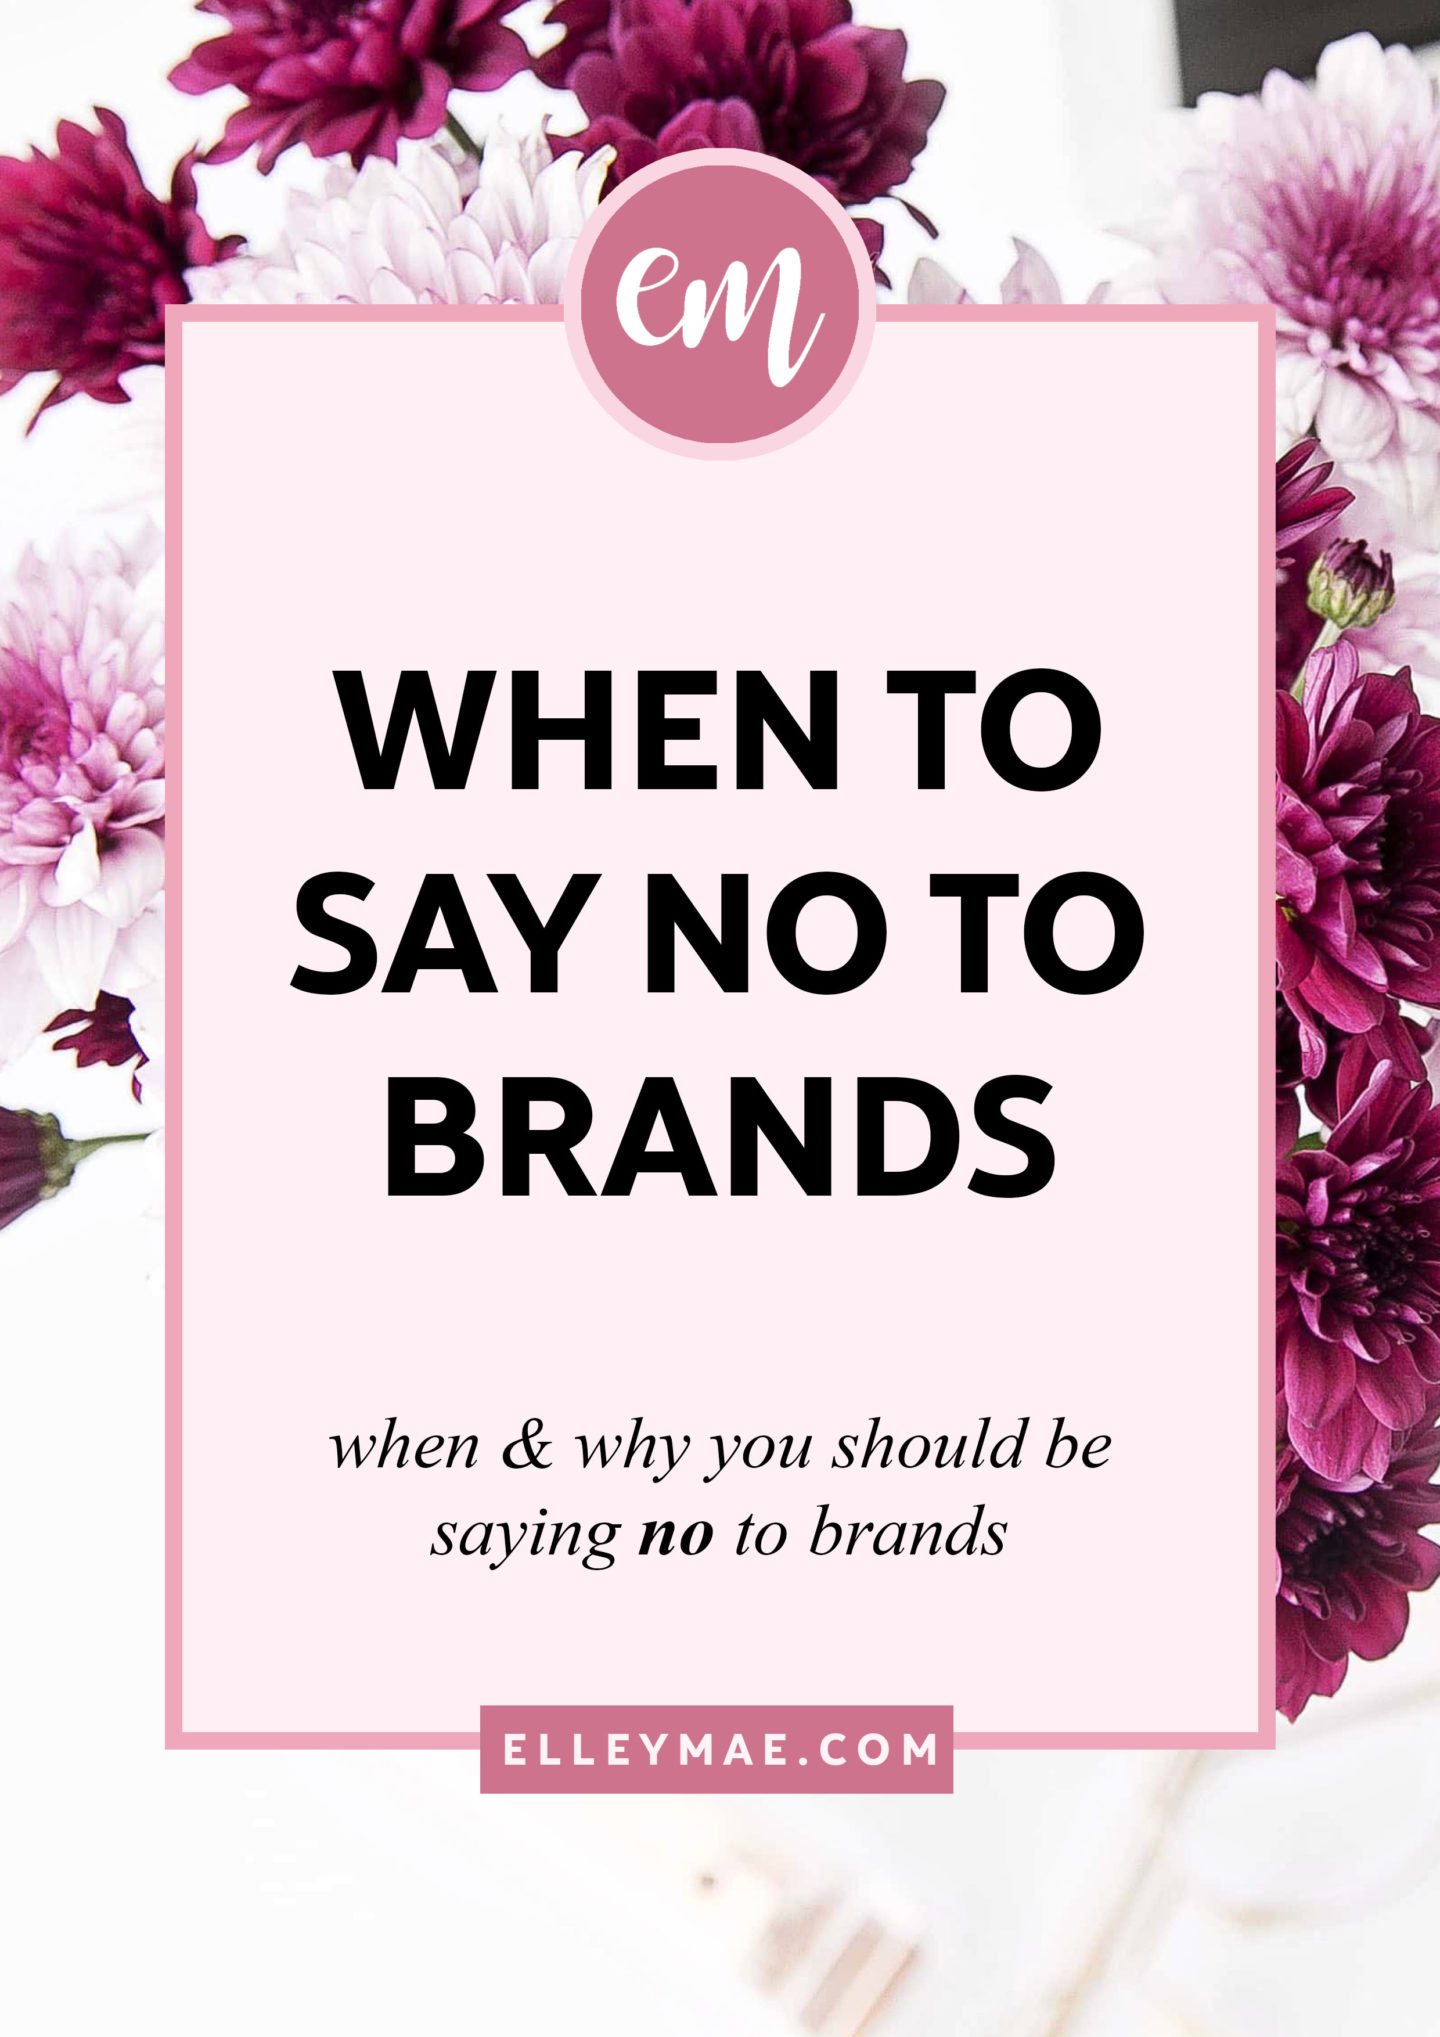 When & Why To Say No To Brands | So a brand has just emailed you offering some wicked deal, free product or discount code. Seems fab, huh? Well, chances are, you could be getting ripped off. Let me show you real life email examples from brands that you won't believe & then you'll see why it's more than okay to say no to brands who don't love you for you | Social Media Tips, Social Media Marketing, Free Blog Resources, Free Blog Template, Work With Brands, Make Money Online, Make Money Blogging, Make Money on Instagram, Get Free Products, Free Products Blogging, Email Templates, Email Examples | ElleyMae.com